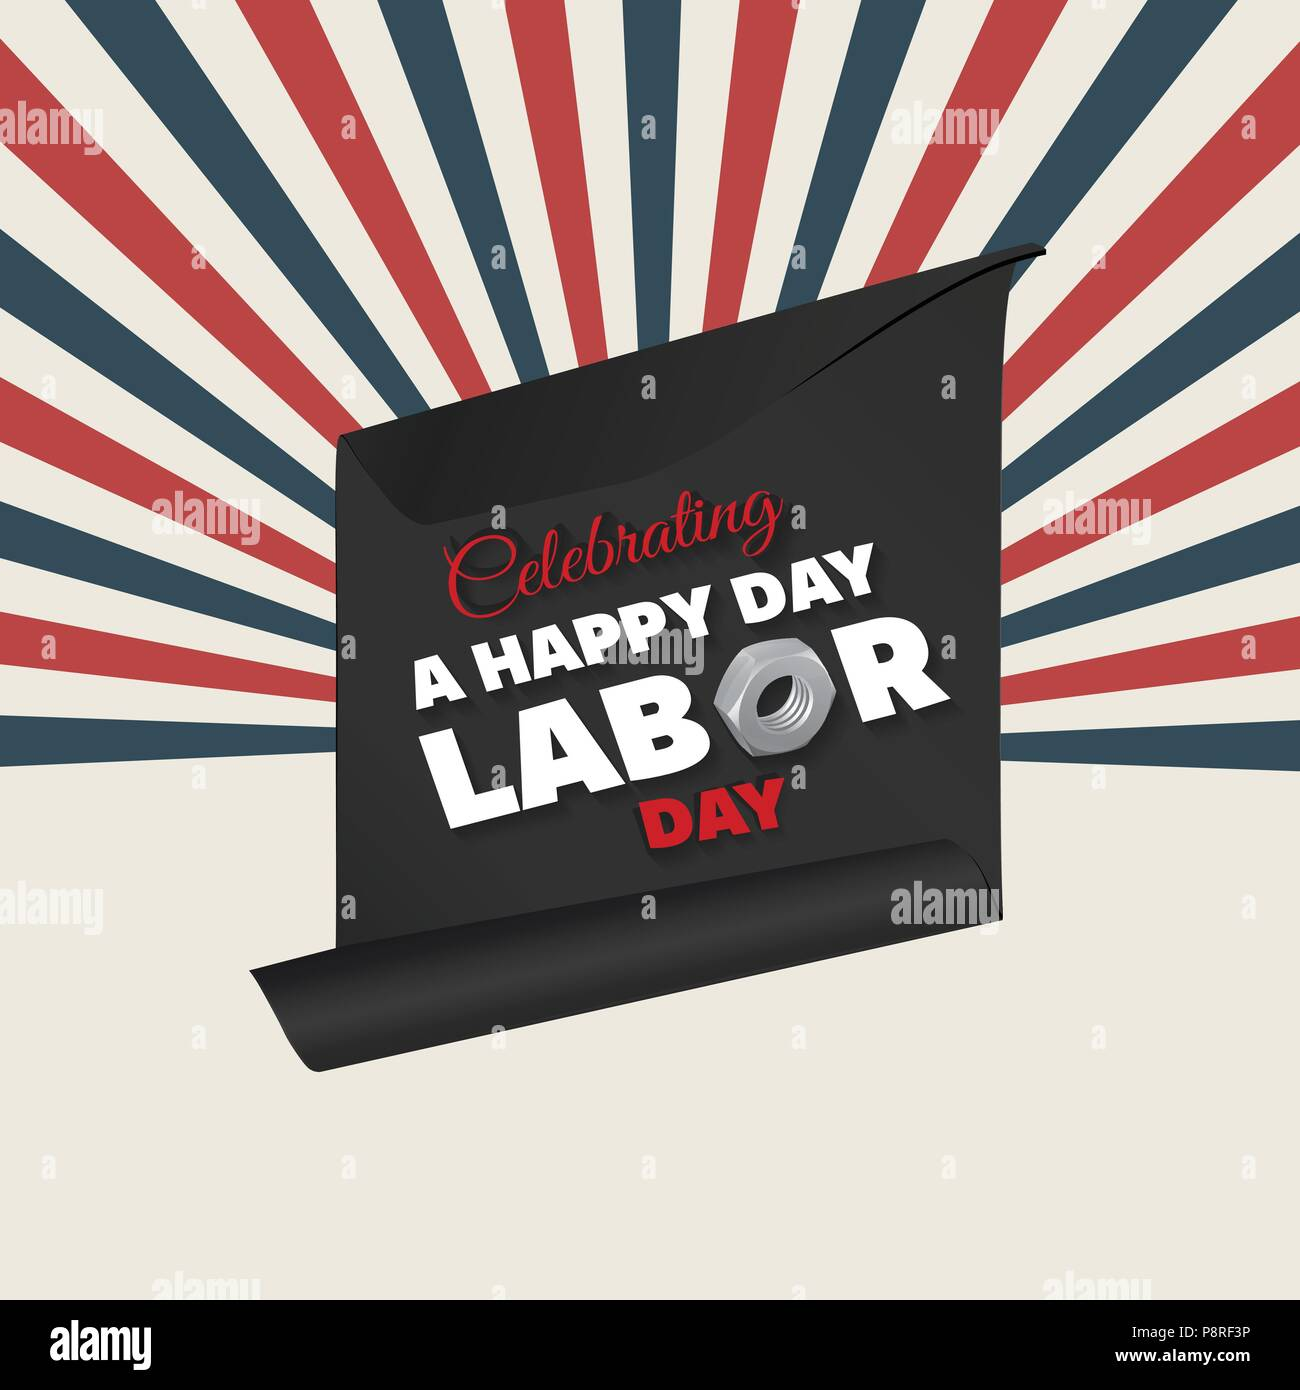 Celebrating Usa Labor Day A National Holiday For Web Design And